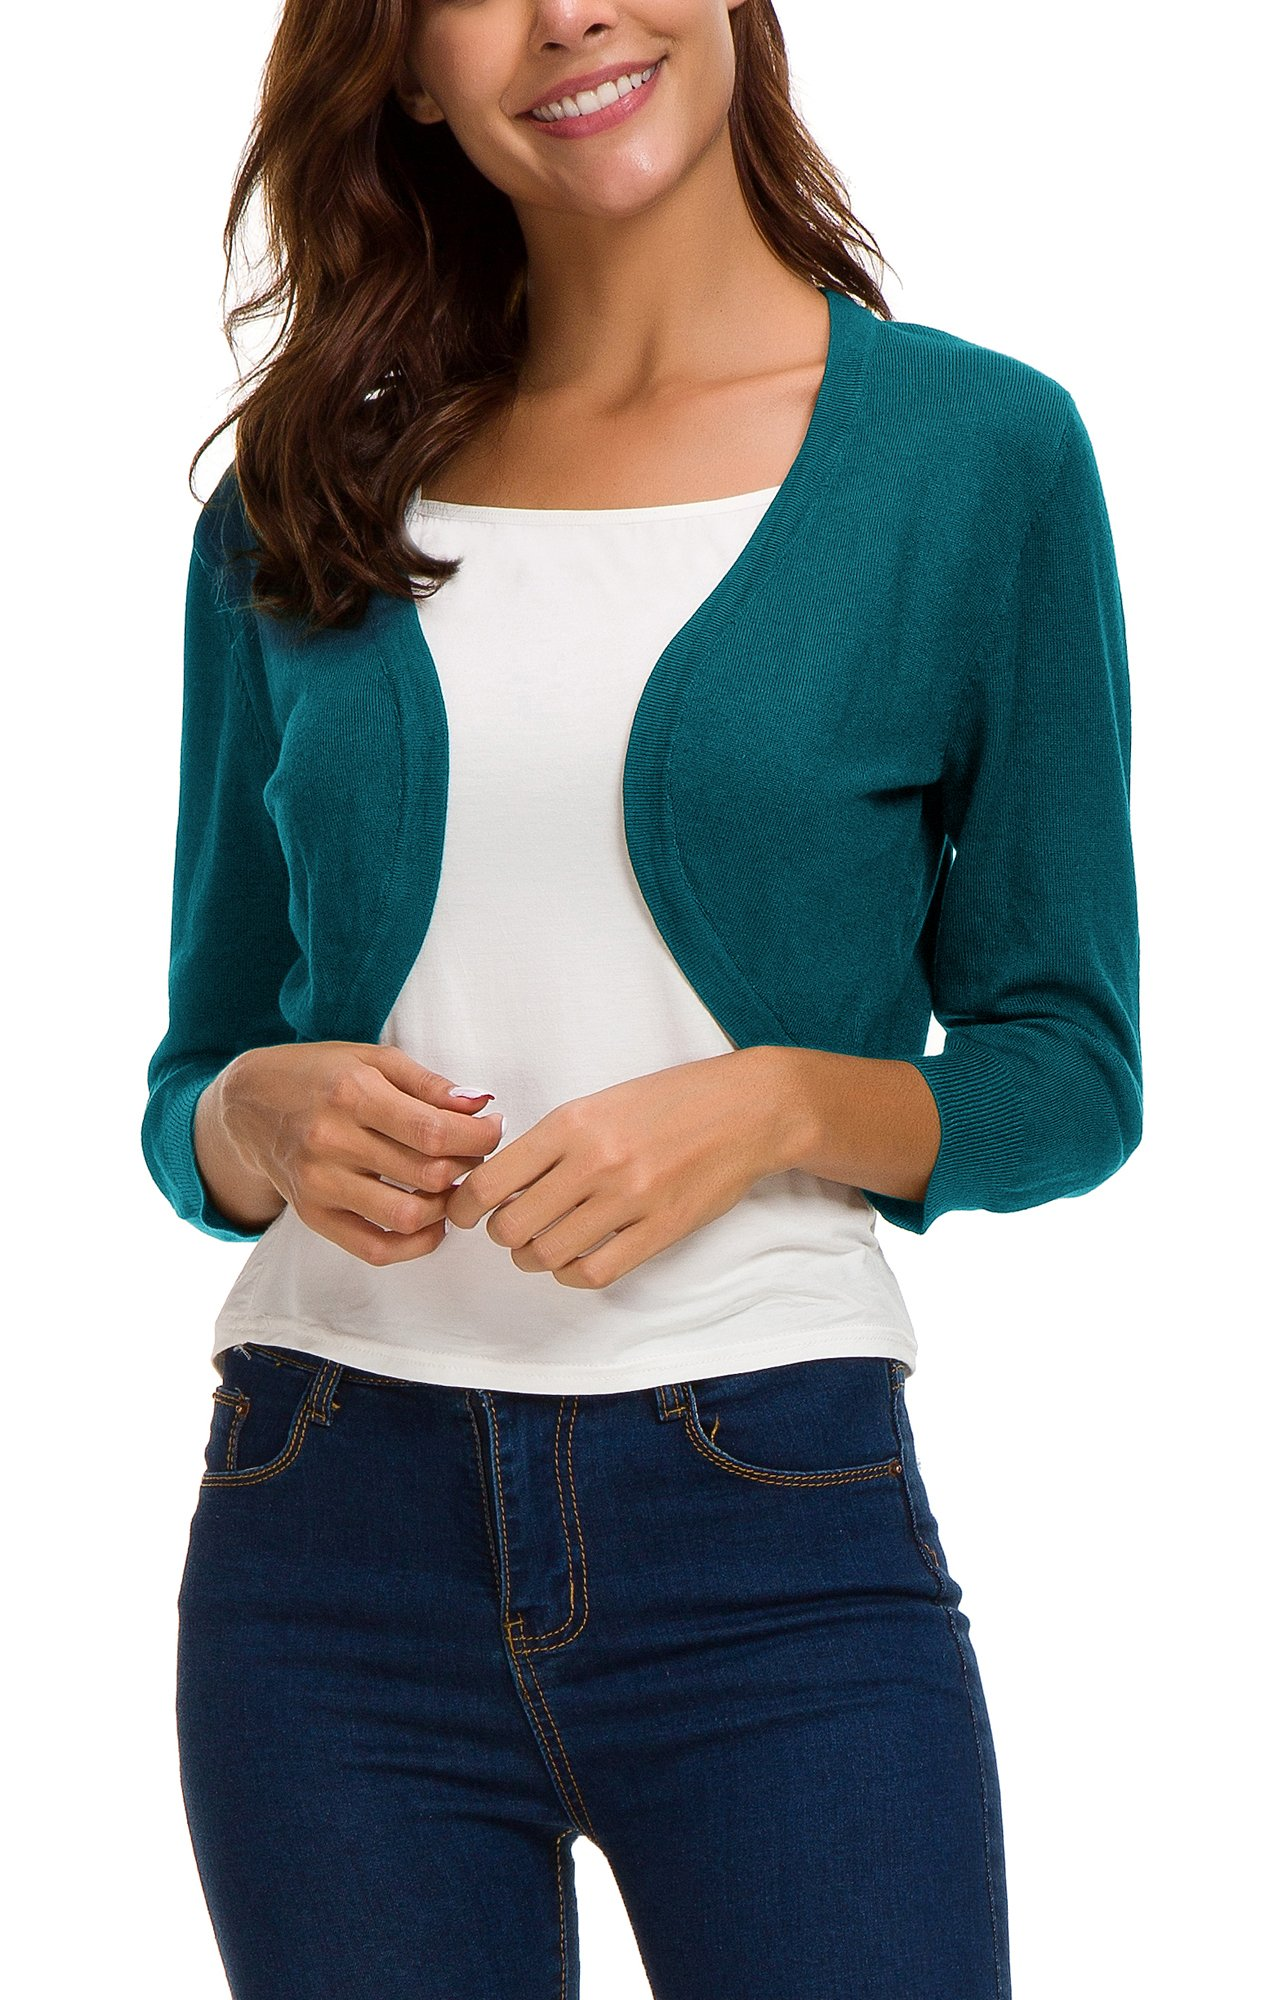 EXCHIC Women's Trendy Bolero Shrug Open Front Cropped Cardigan 3/4 Sleeves Short Coat/Sweater (L, Peacock Blue) by EXCHIC (Image #3)